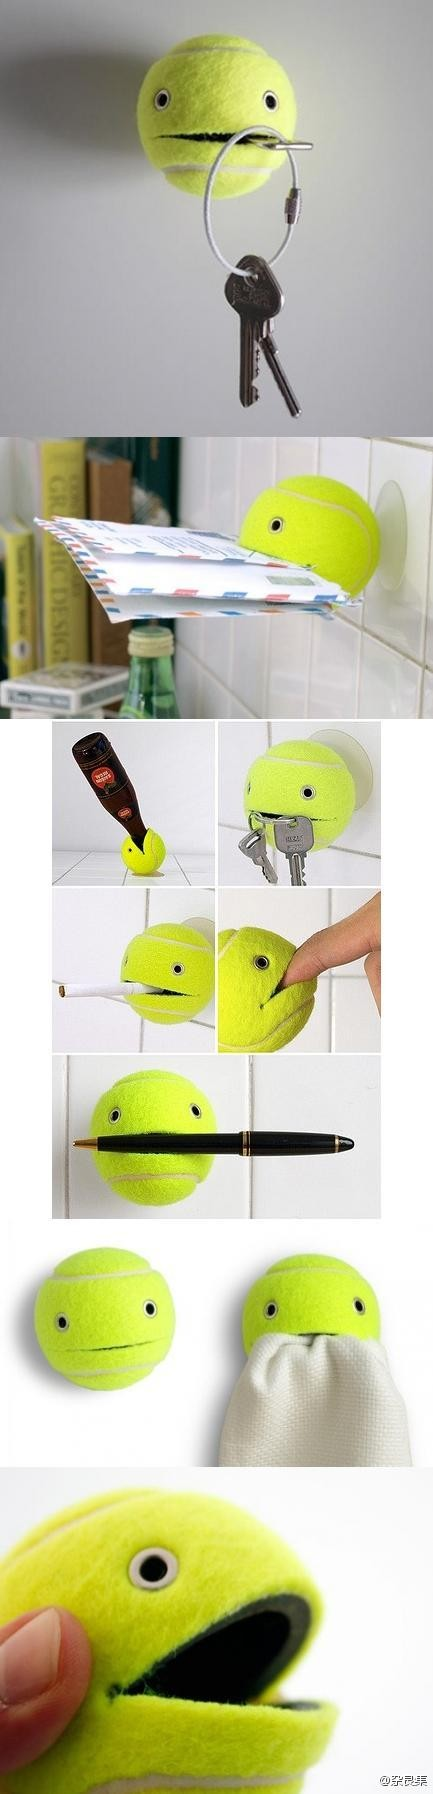 DIY tennis ball holder 2